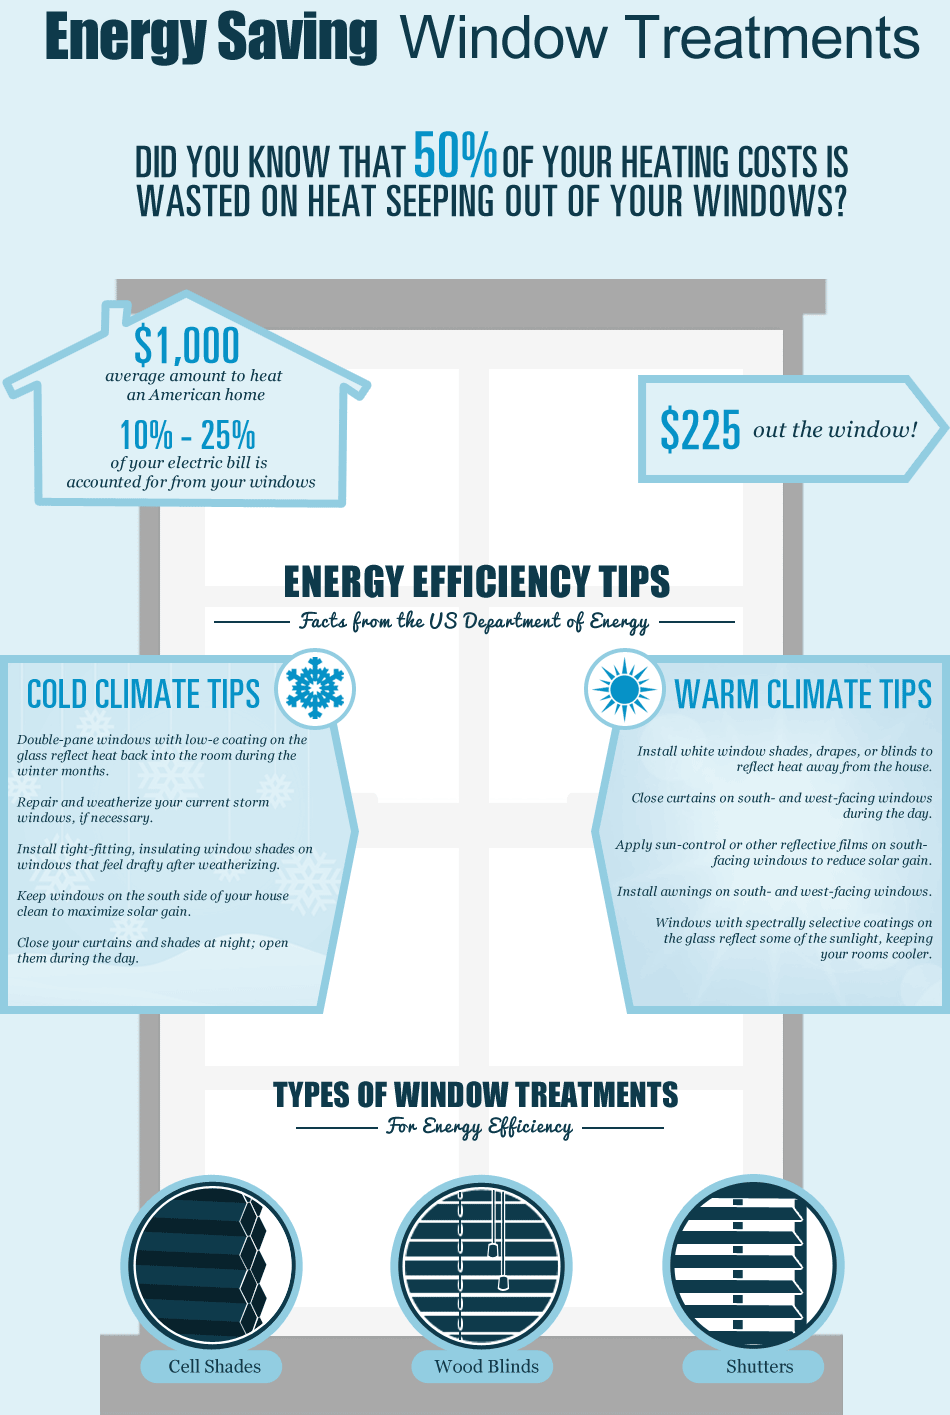 New Windows Will Help Your Home Any Time of Year!